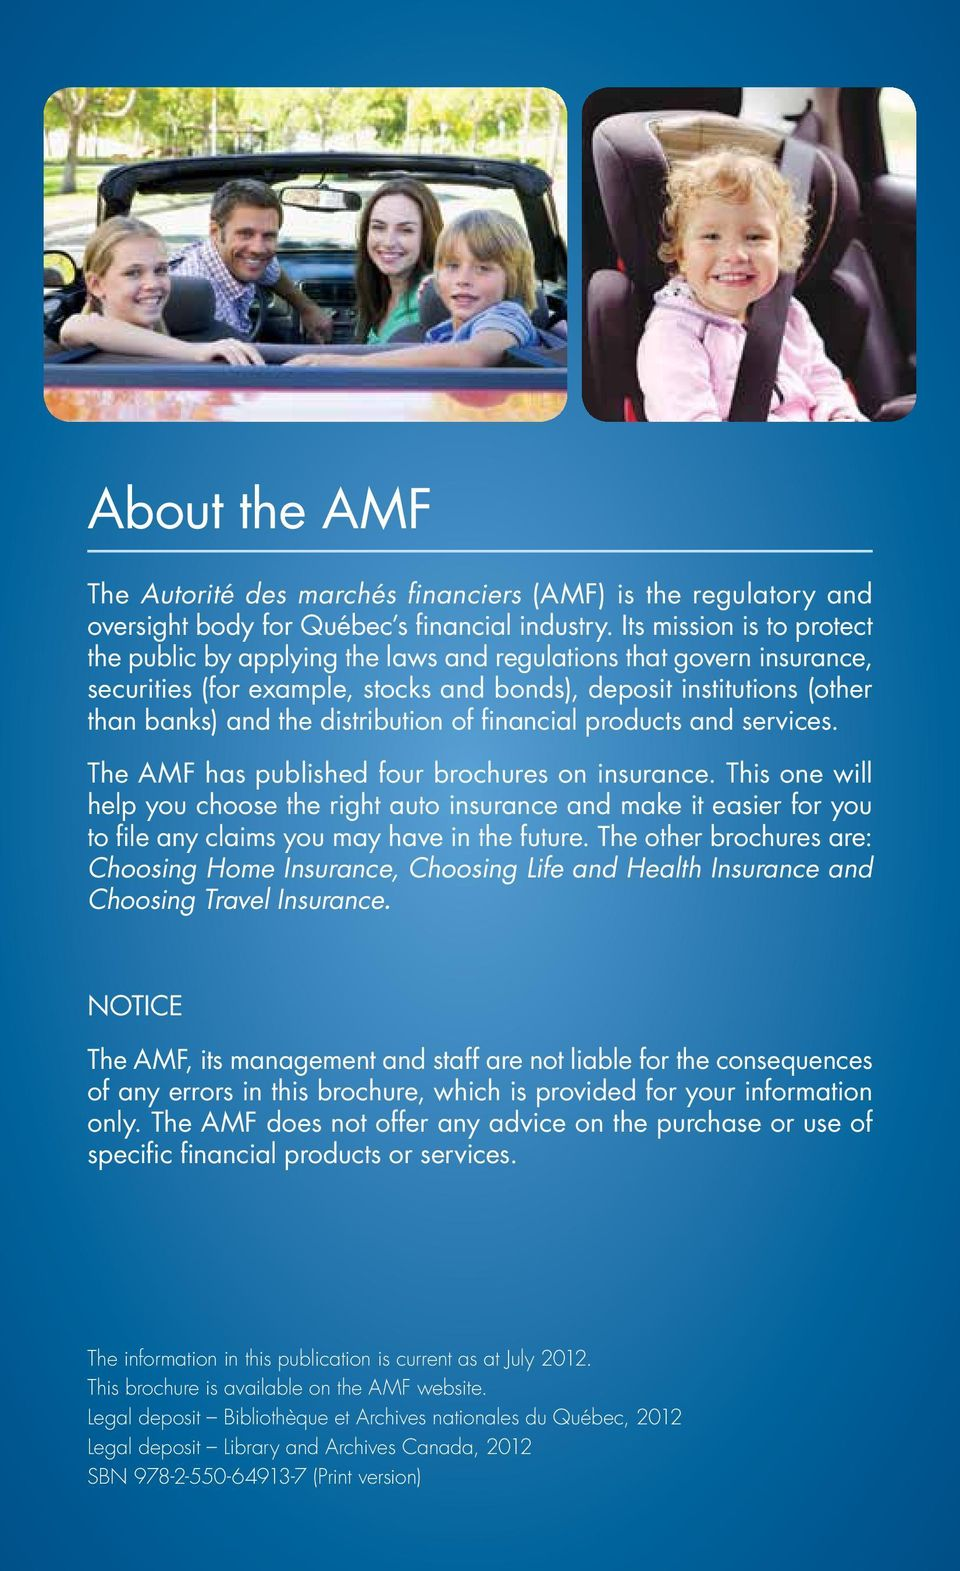 distribution of financial products and services. The AMF has published four brochures on insurance.